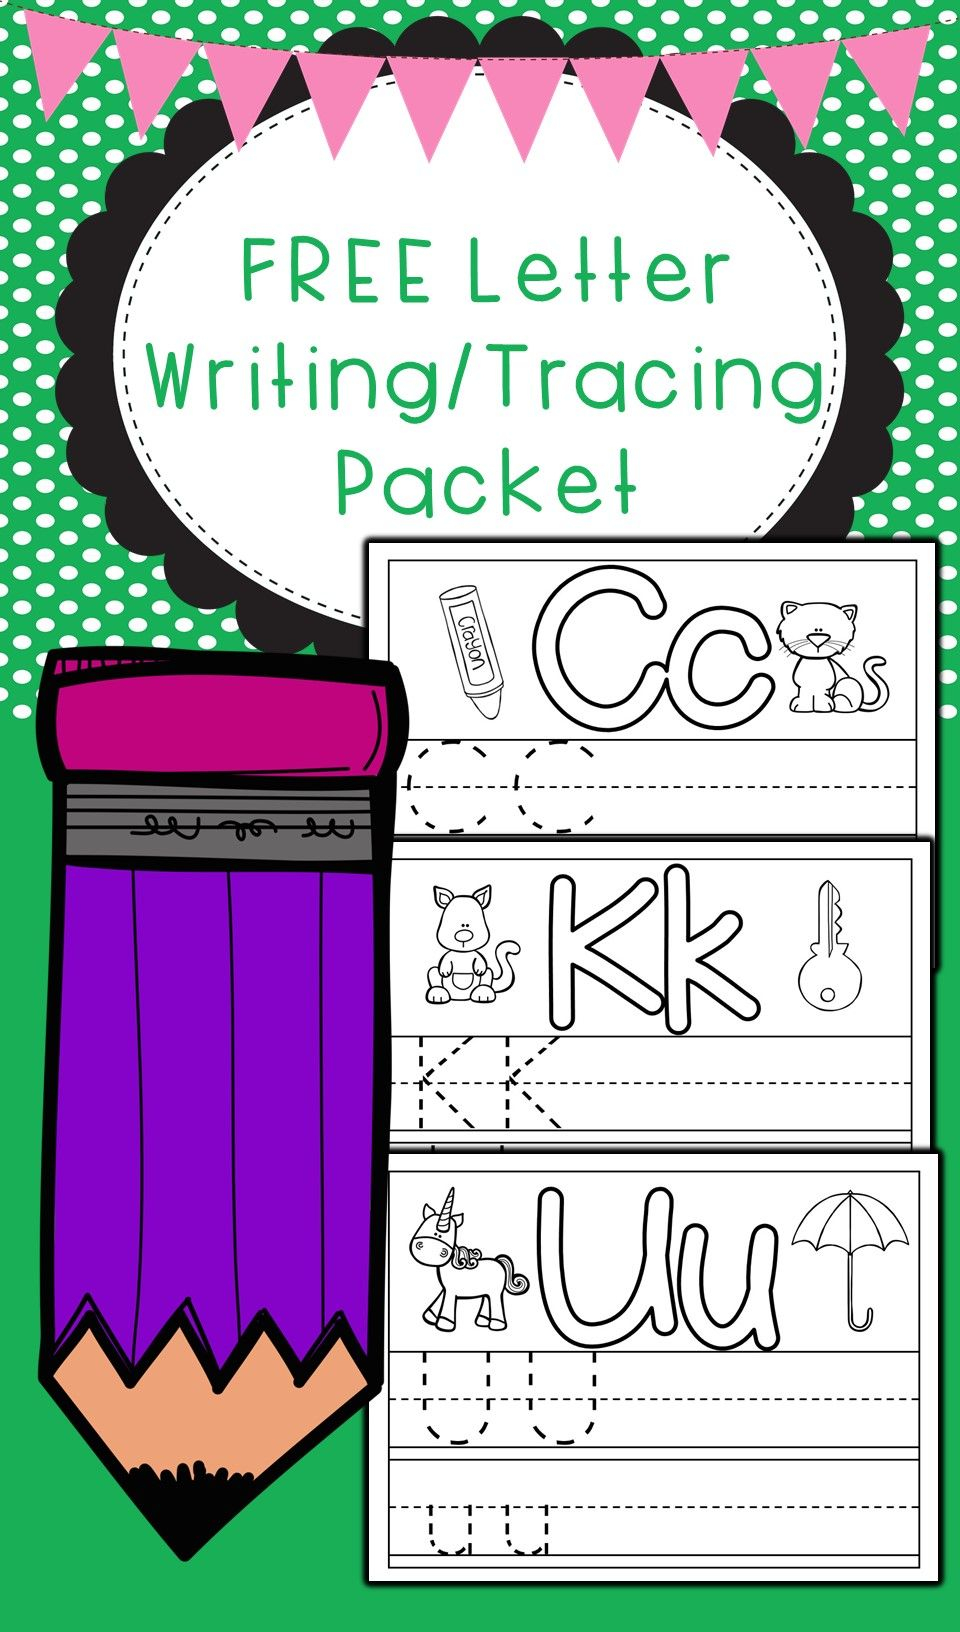 Free Letter Tracing And Writing Packet Perfect To Prepare Your